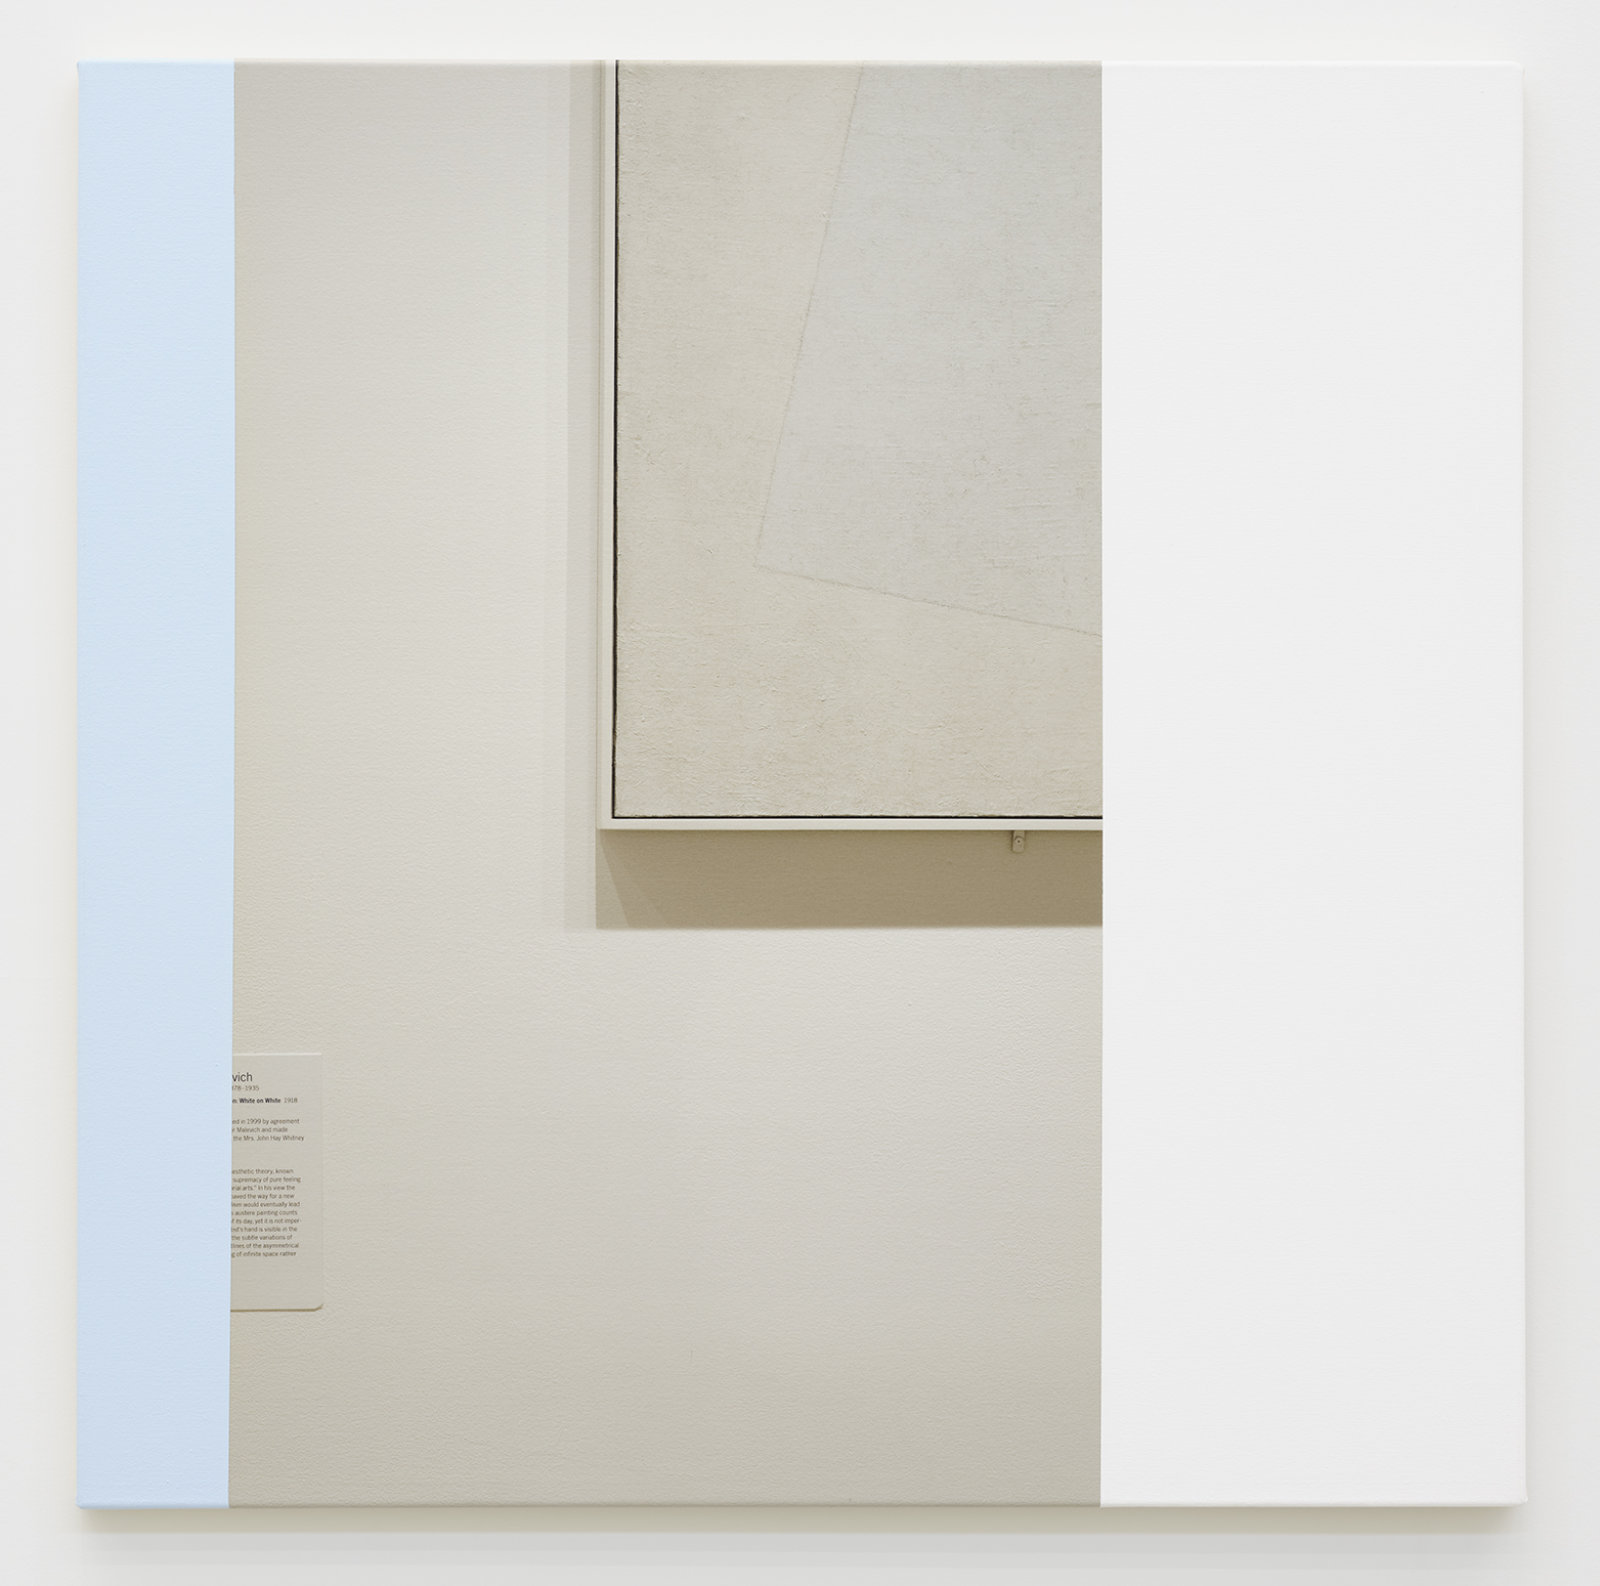 Ian Wallace, Abstract Painting (MOMA NYC) II, 2009, photolaminate with acrylic on canvas, 36 x 36 in. (91 x 91 cm) by Ian Wallace